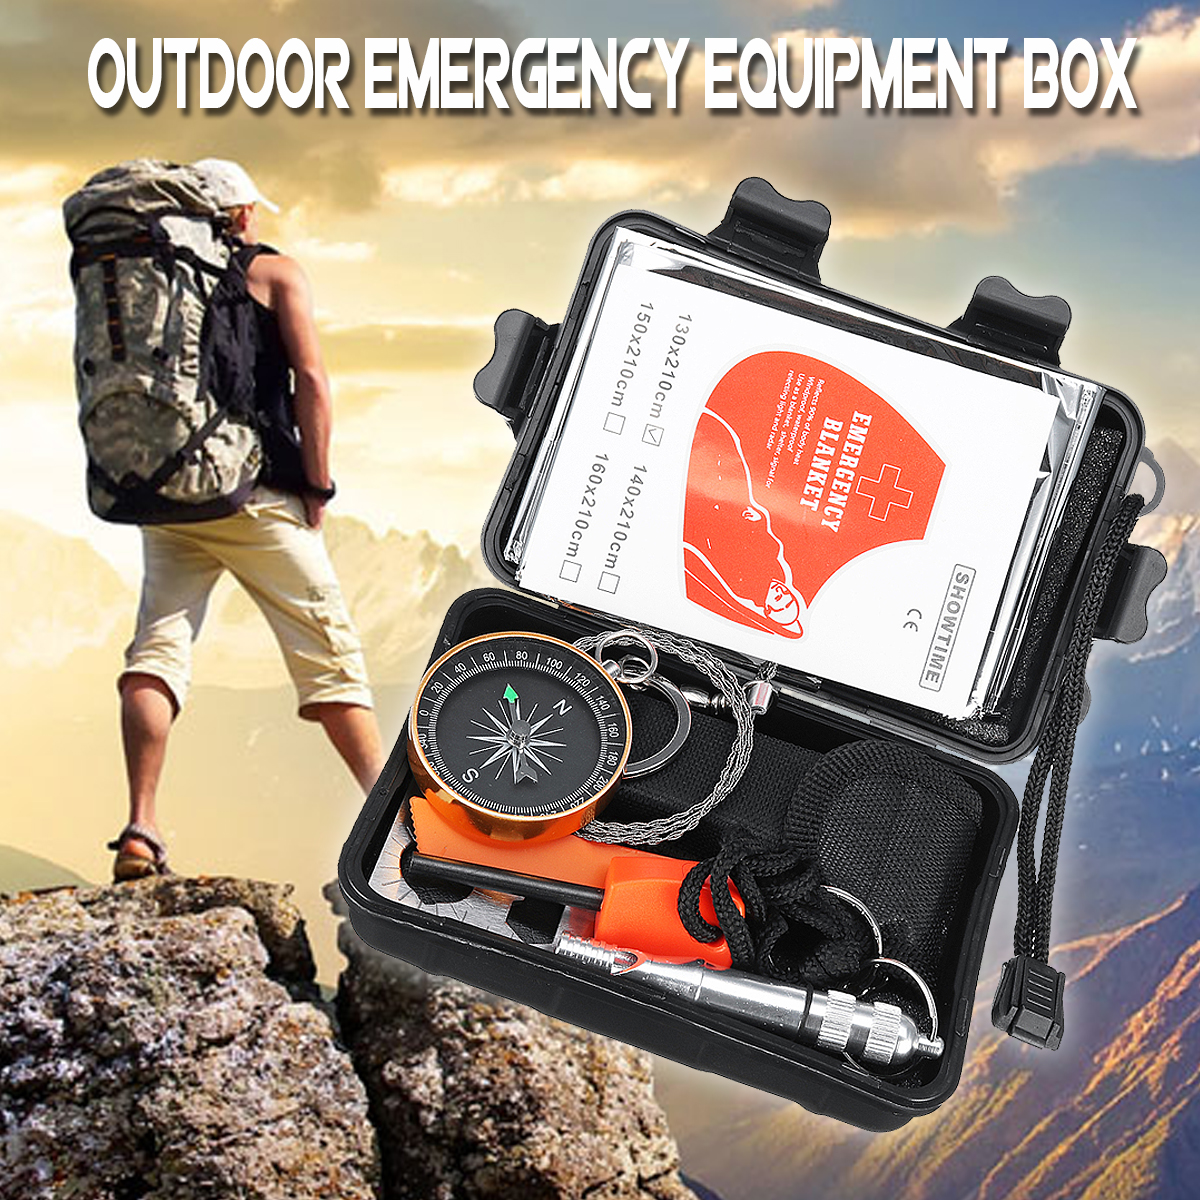 SOS Emergency Survival Equipment Kit Tactical Hunting Gear Tools with Waterproof Storage Box